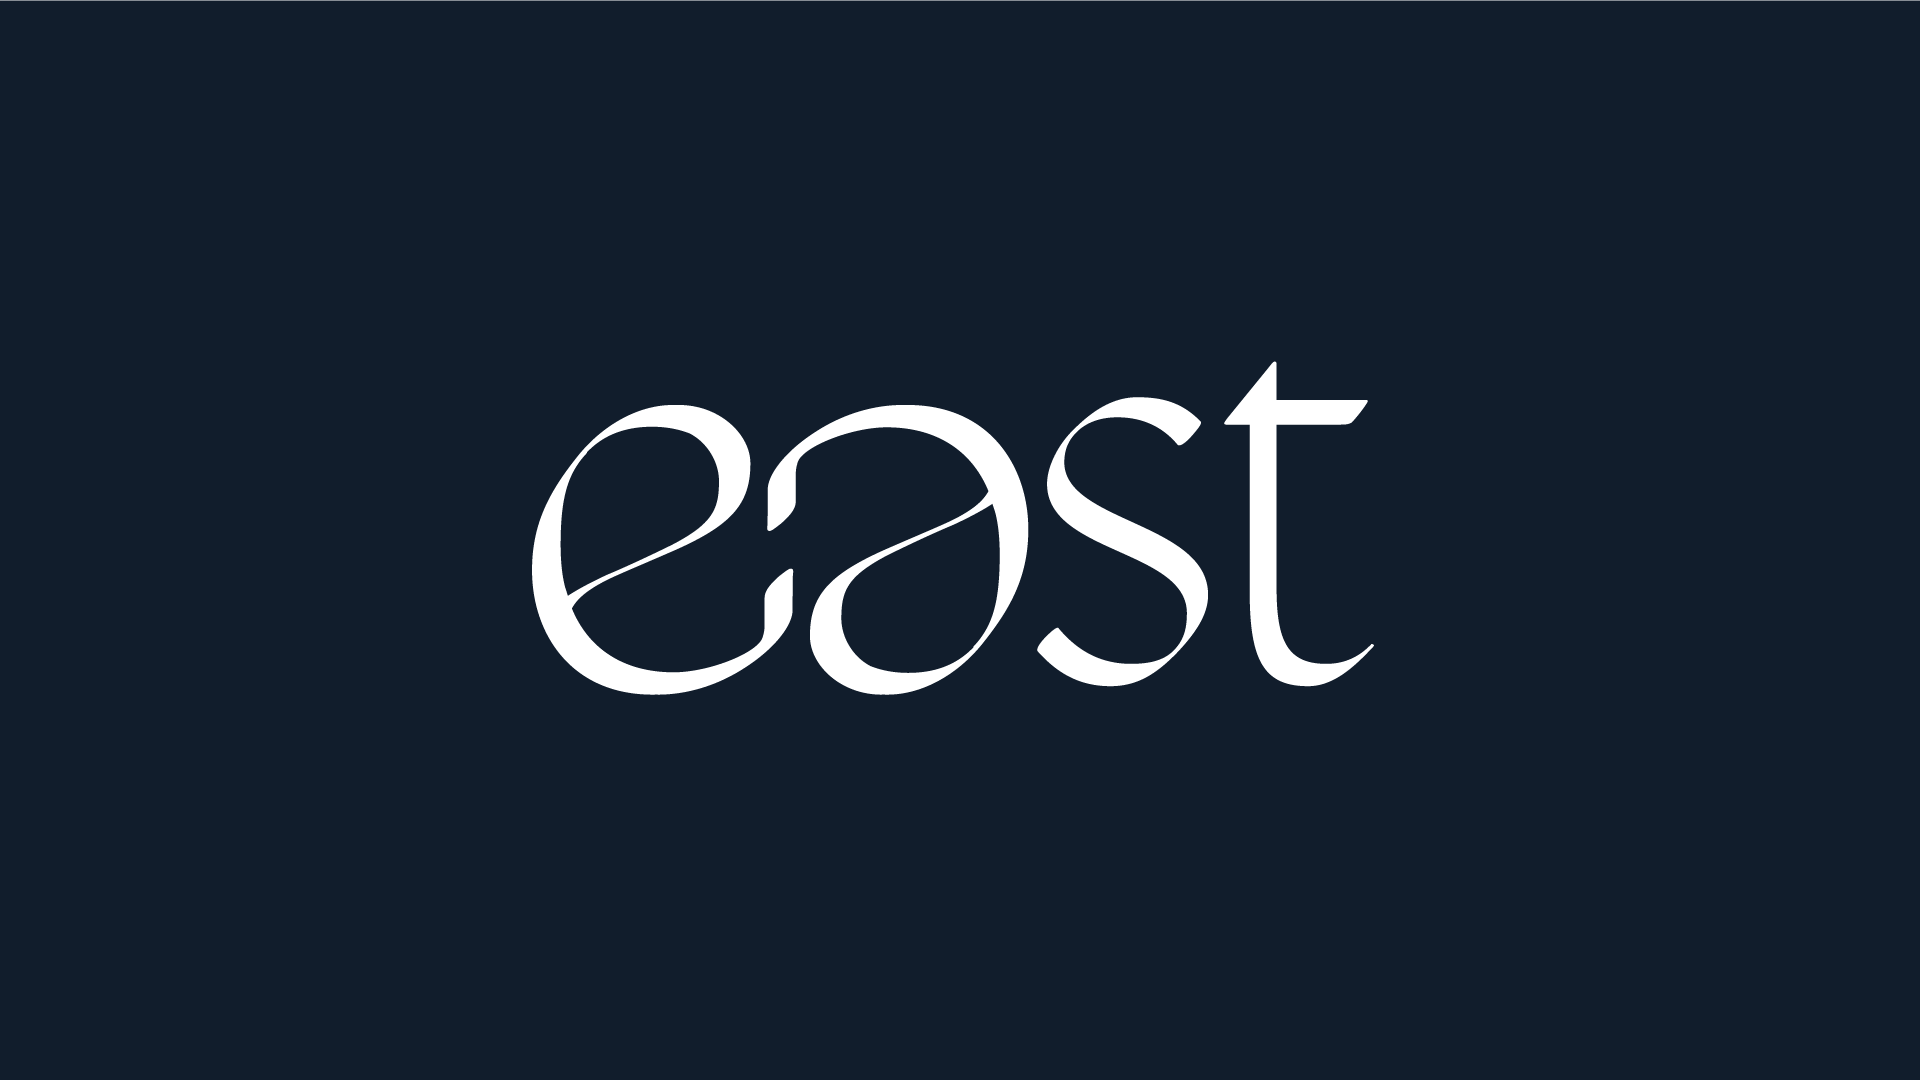 East-Design-Direction_B7